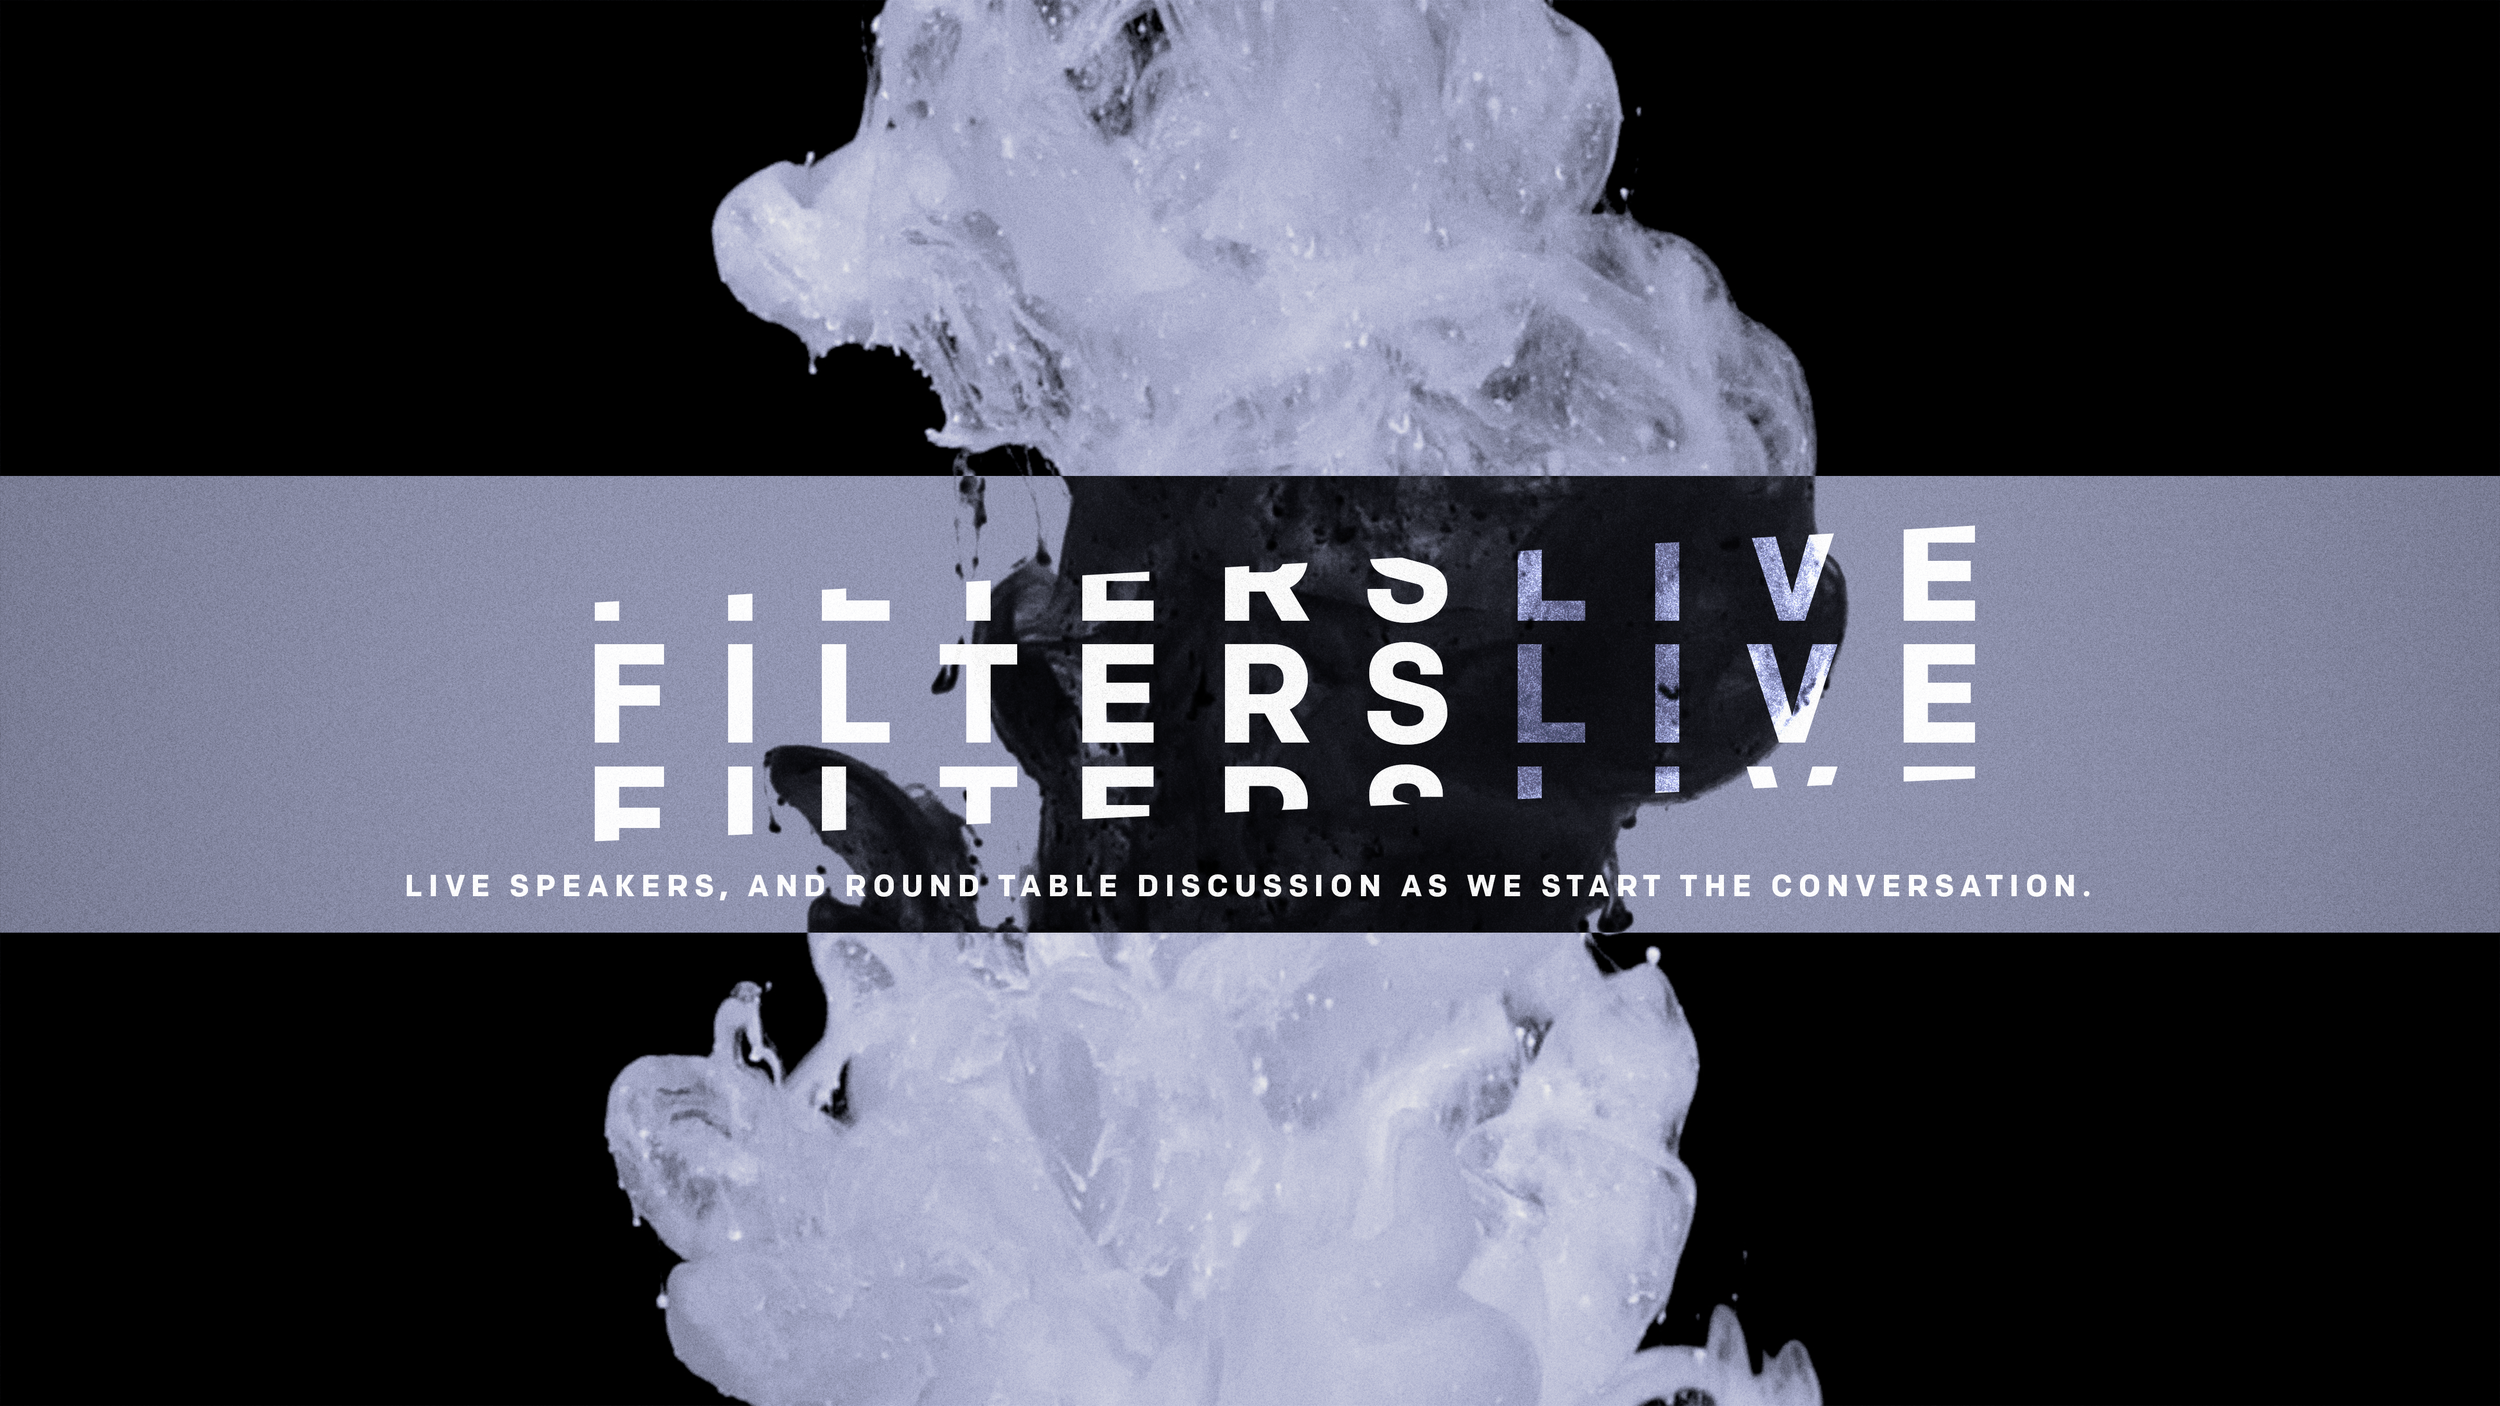 Filters_LIVE_16x9_v1.png